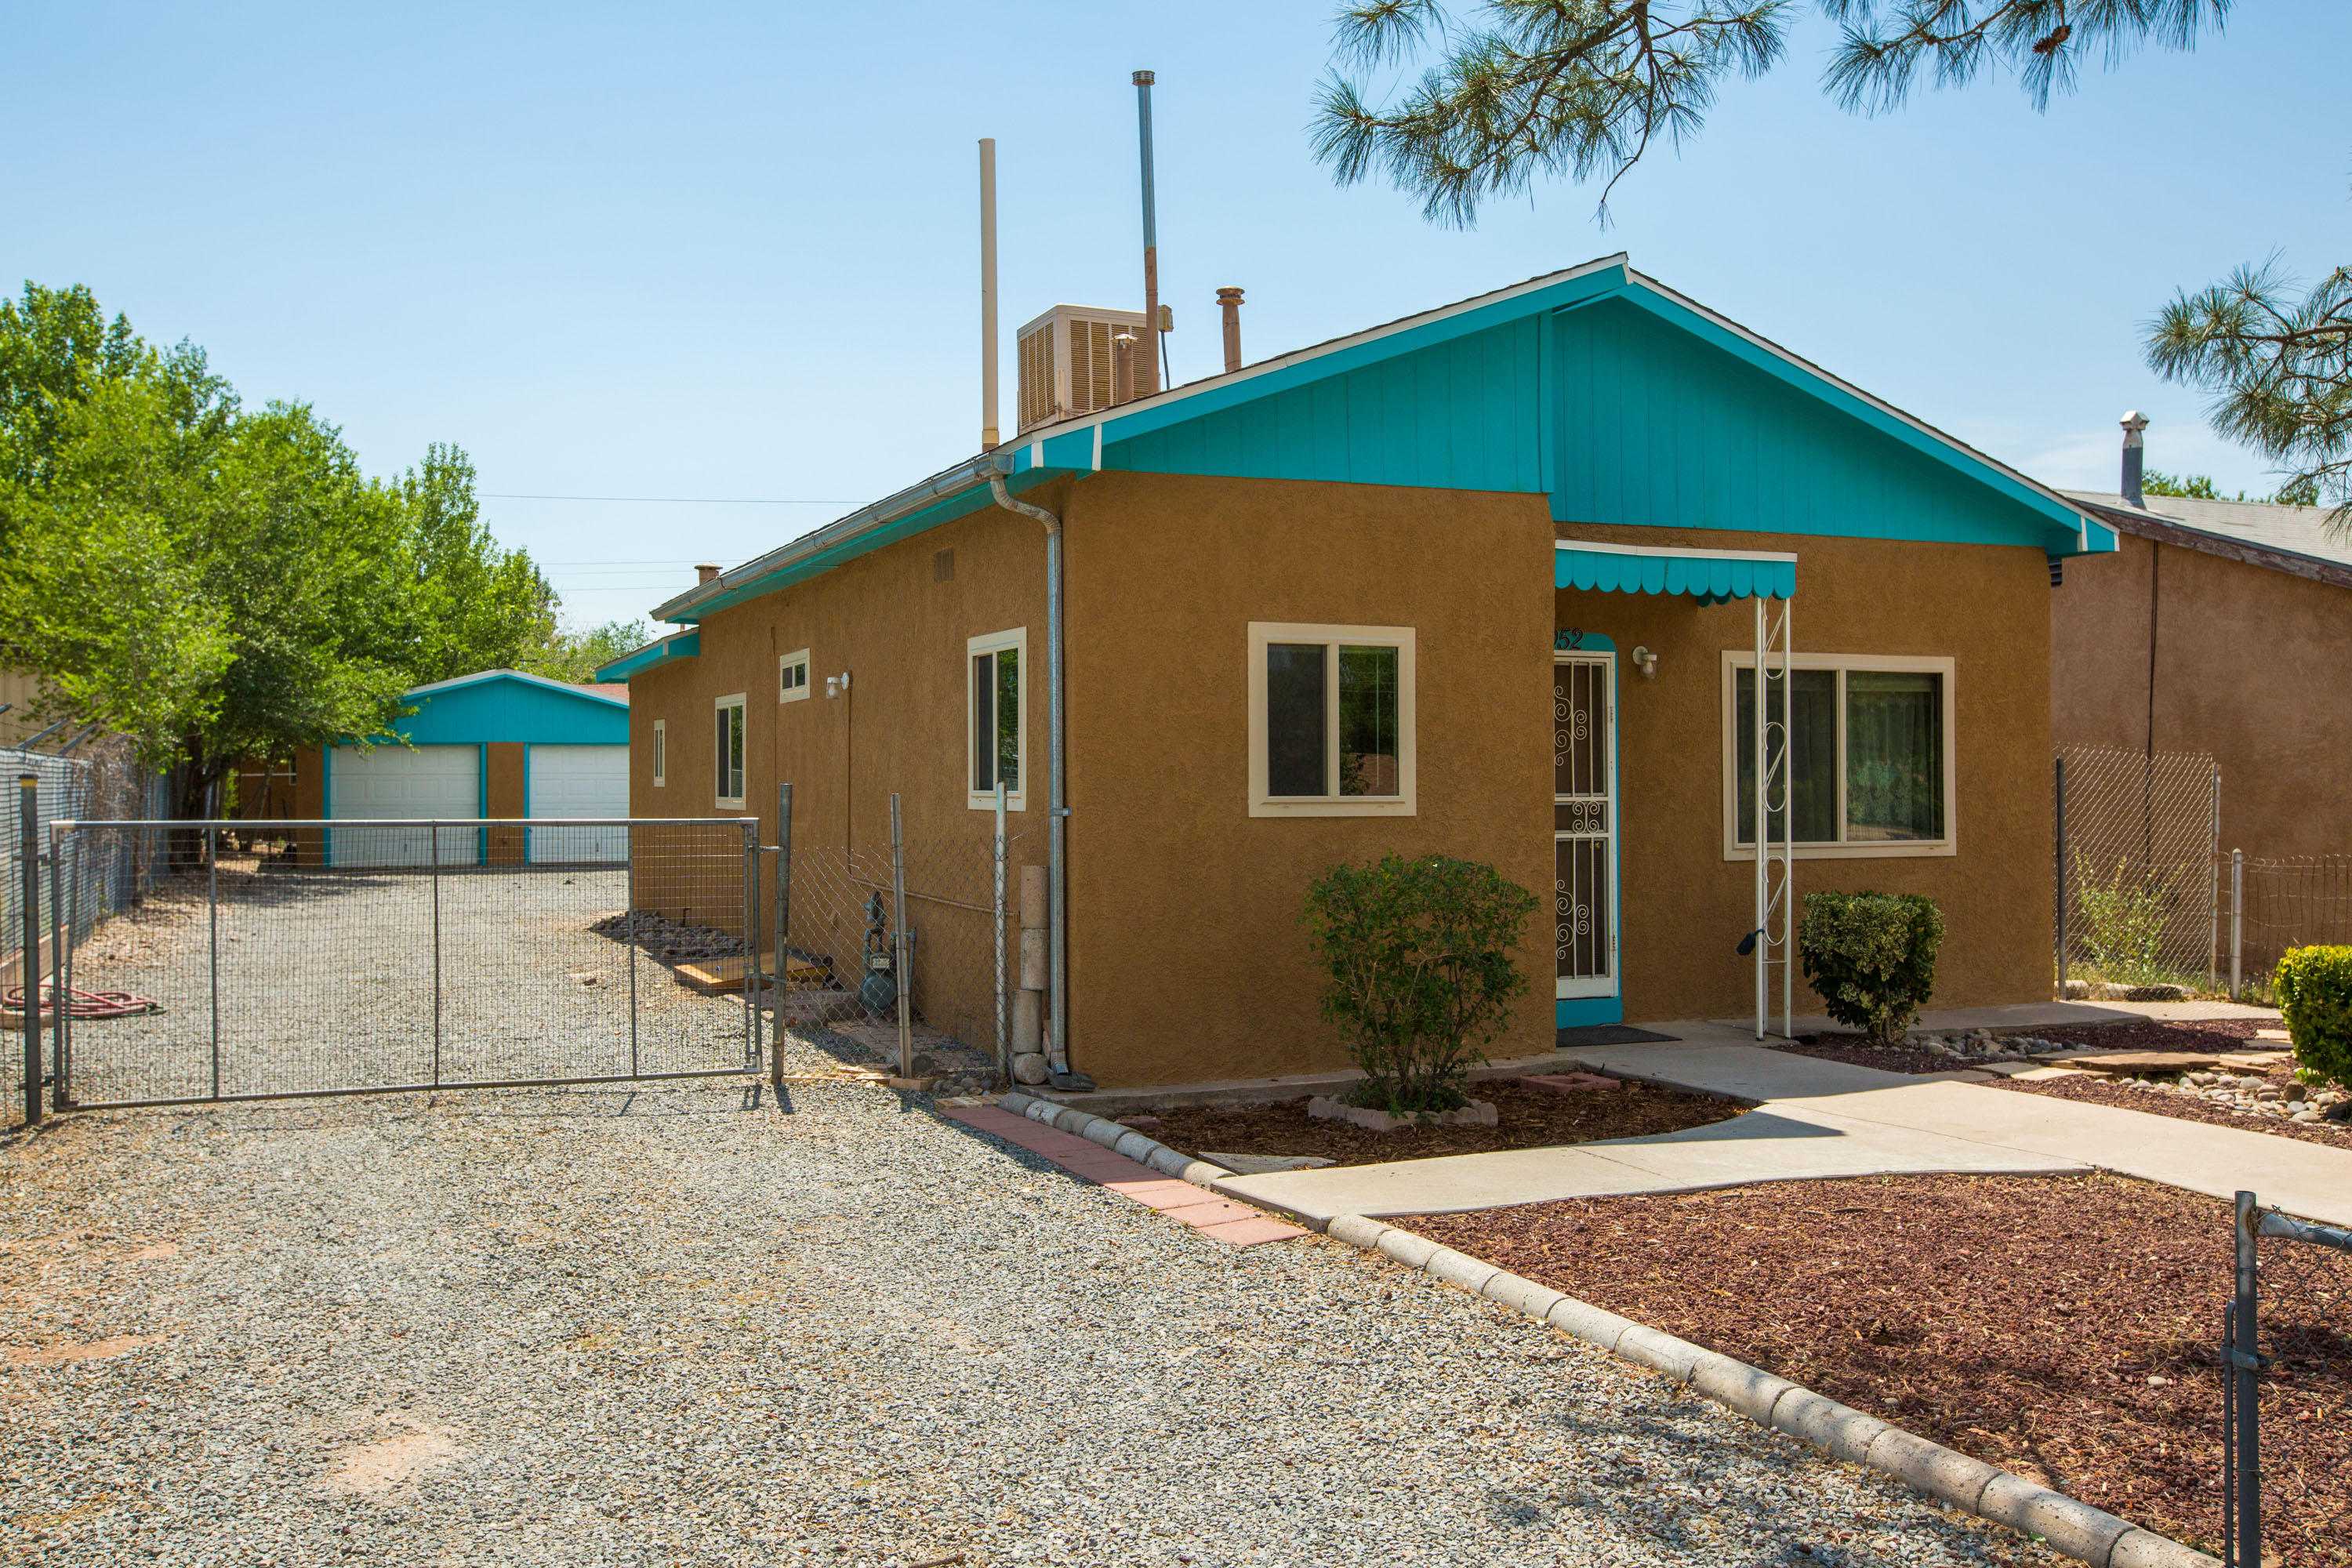 Charming home in the close-in North Valley!  Excellent proximity to Bosque, trails, open space, ditches, Flying Star, and easy access to I-40, Downtown, Old Town, UNM & hospitals.  Recent windows (4-5 years?) roof & sewer line replaced in the past 10 years, hardwood floors, and detached 2 car garage.  This one won't last long - get your offers in by Sunday, 6/27 @ 6pm.  Offers to be reviewed on Monday.